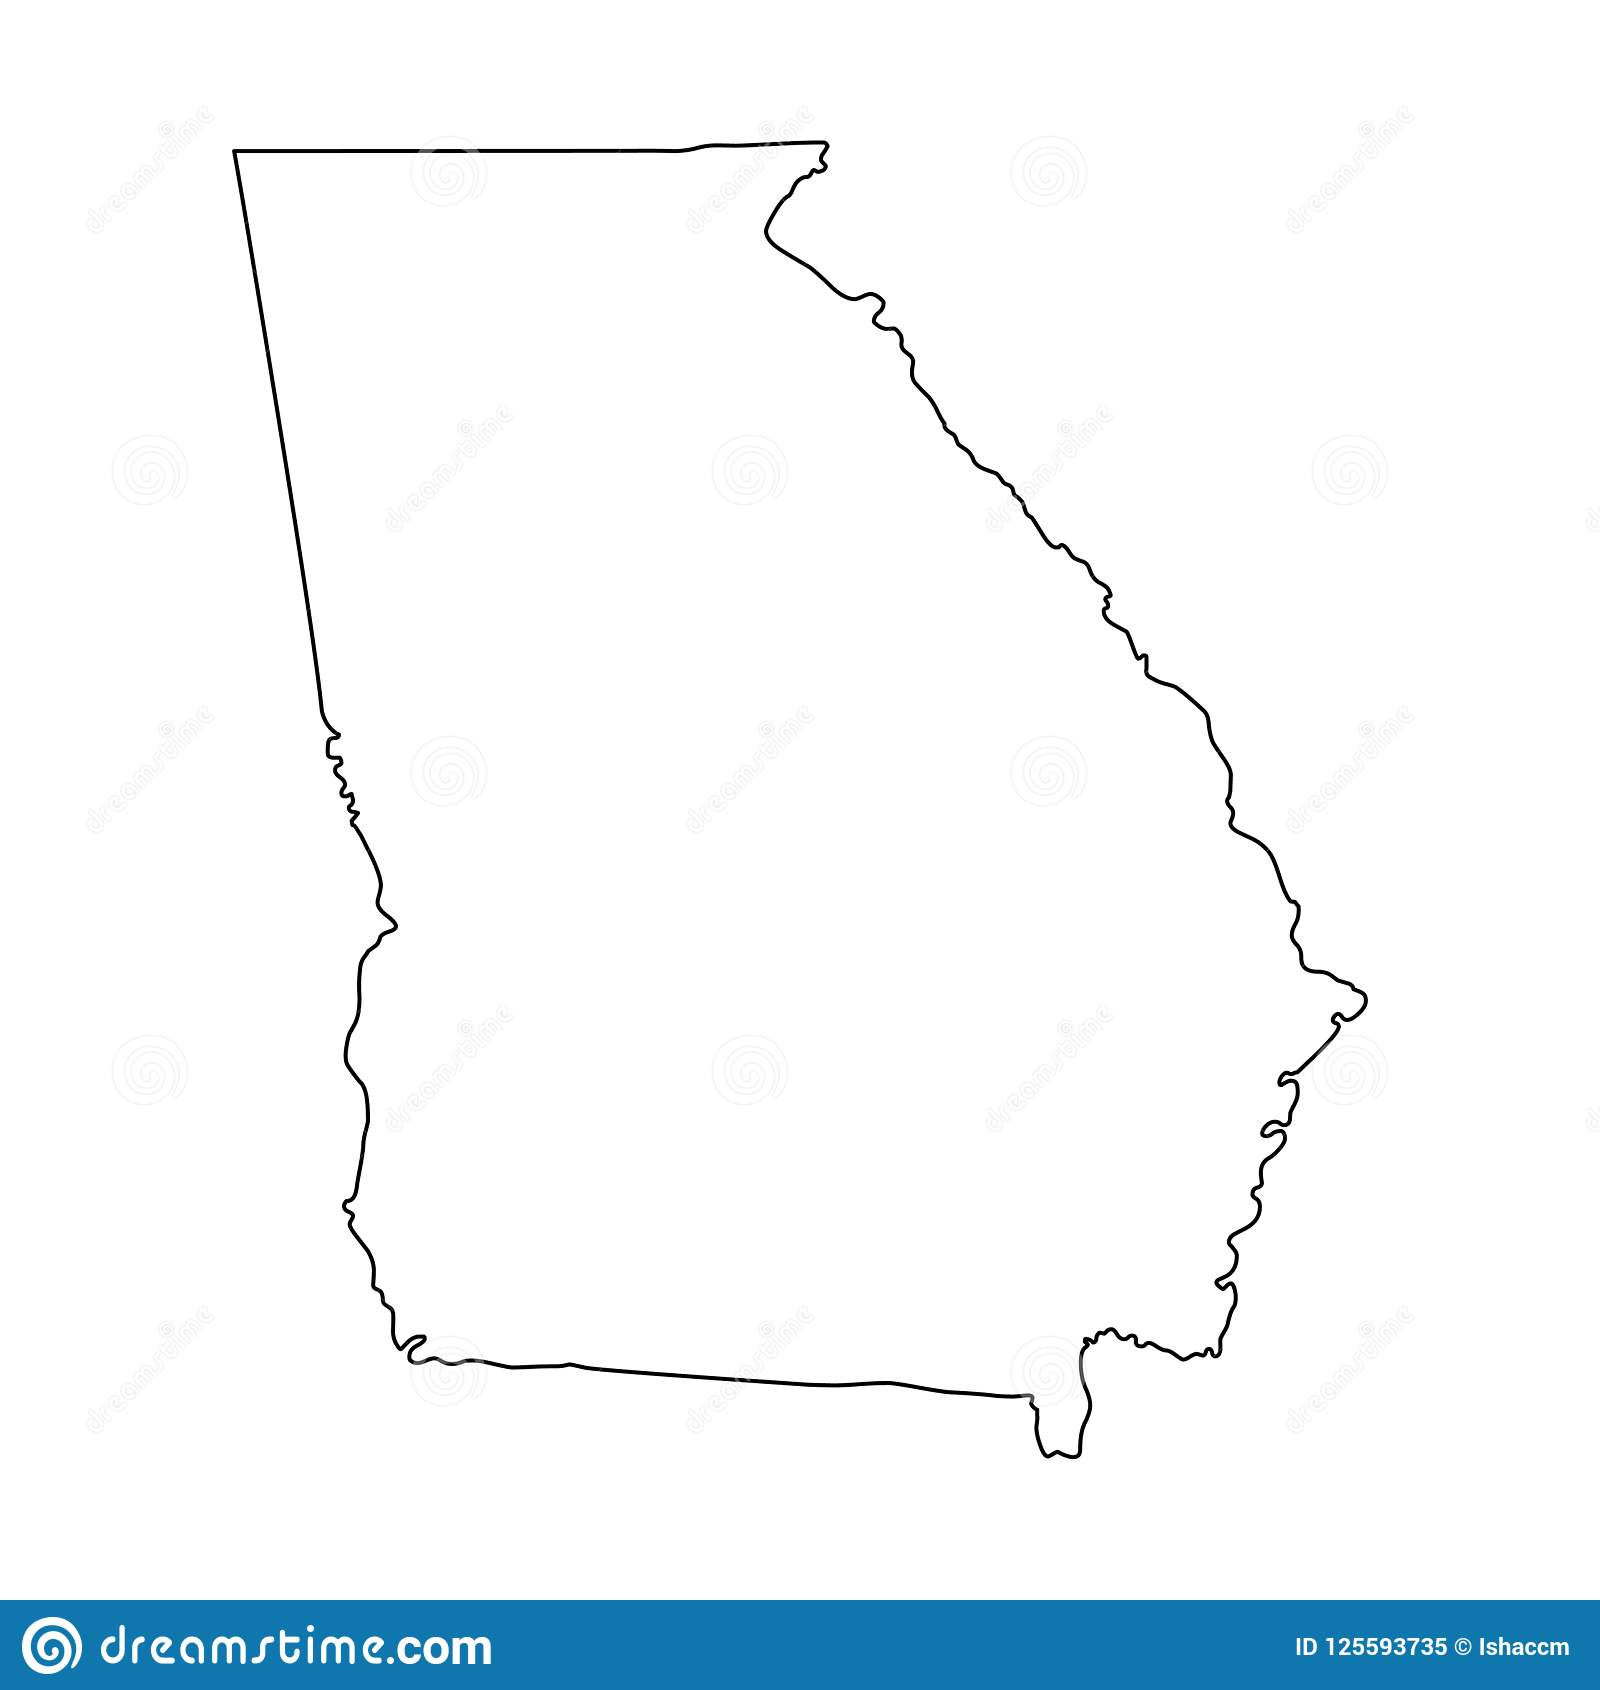 Outline Of Georgia Map.Georgia Outline Map Vector Illustration Stock Vector Illustration